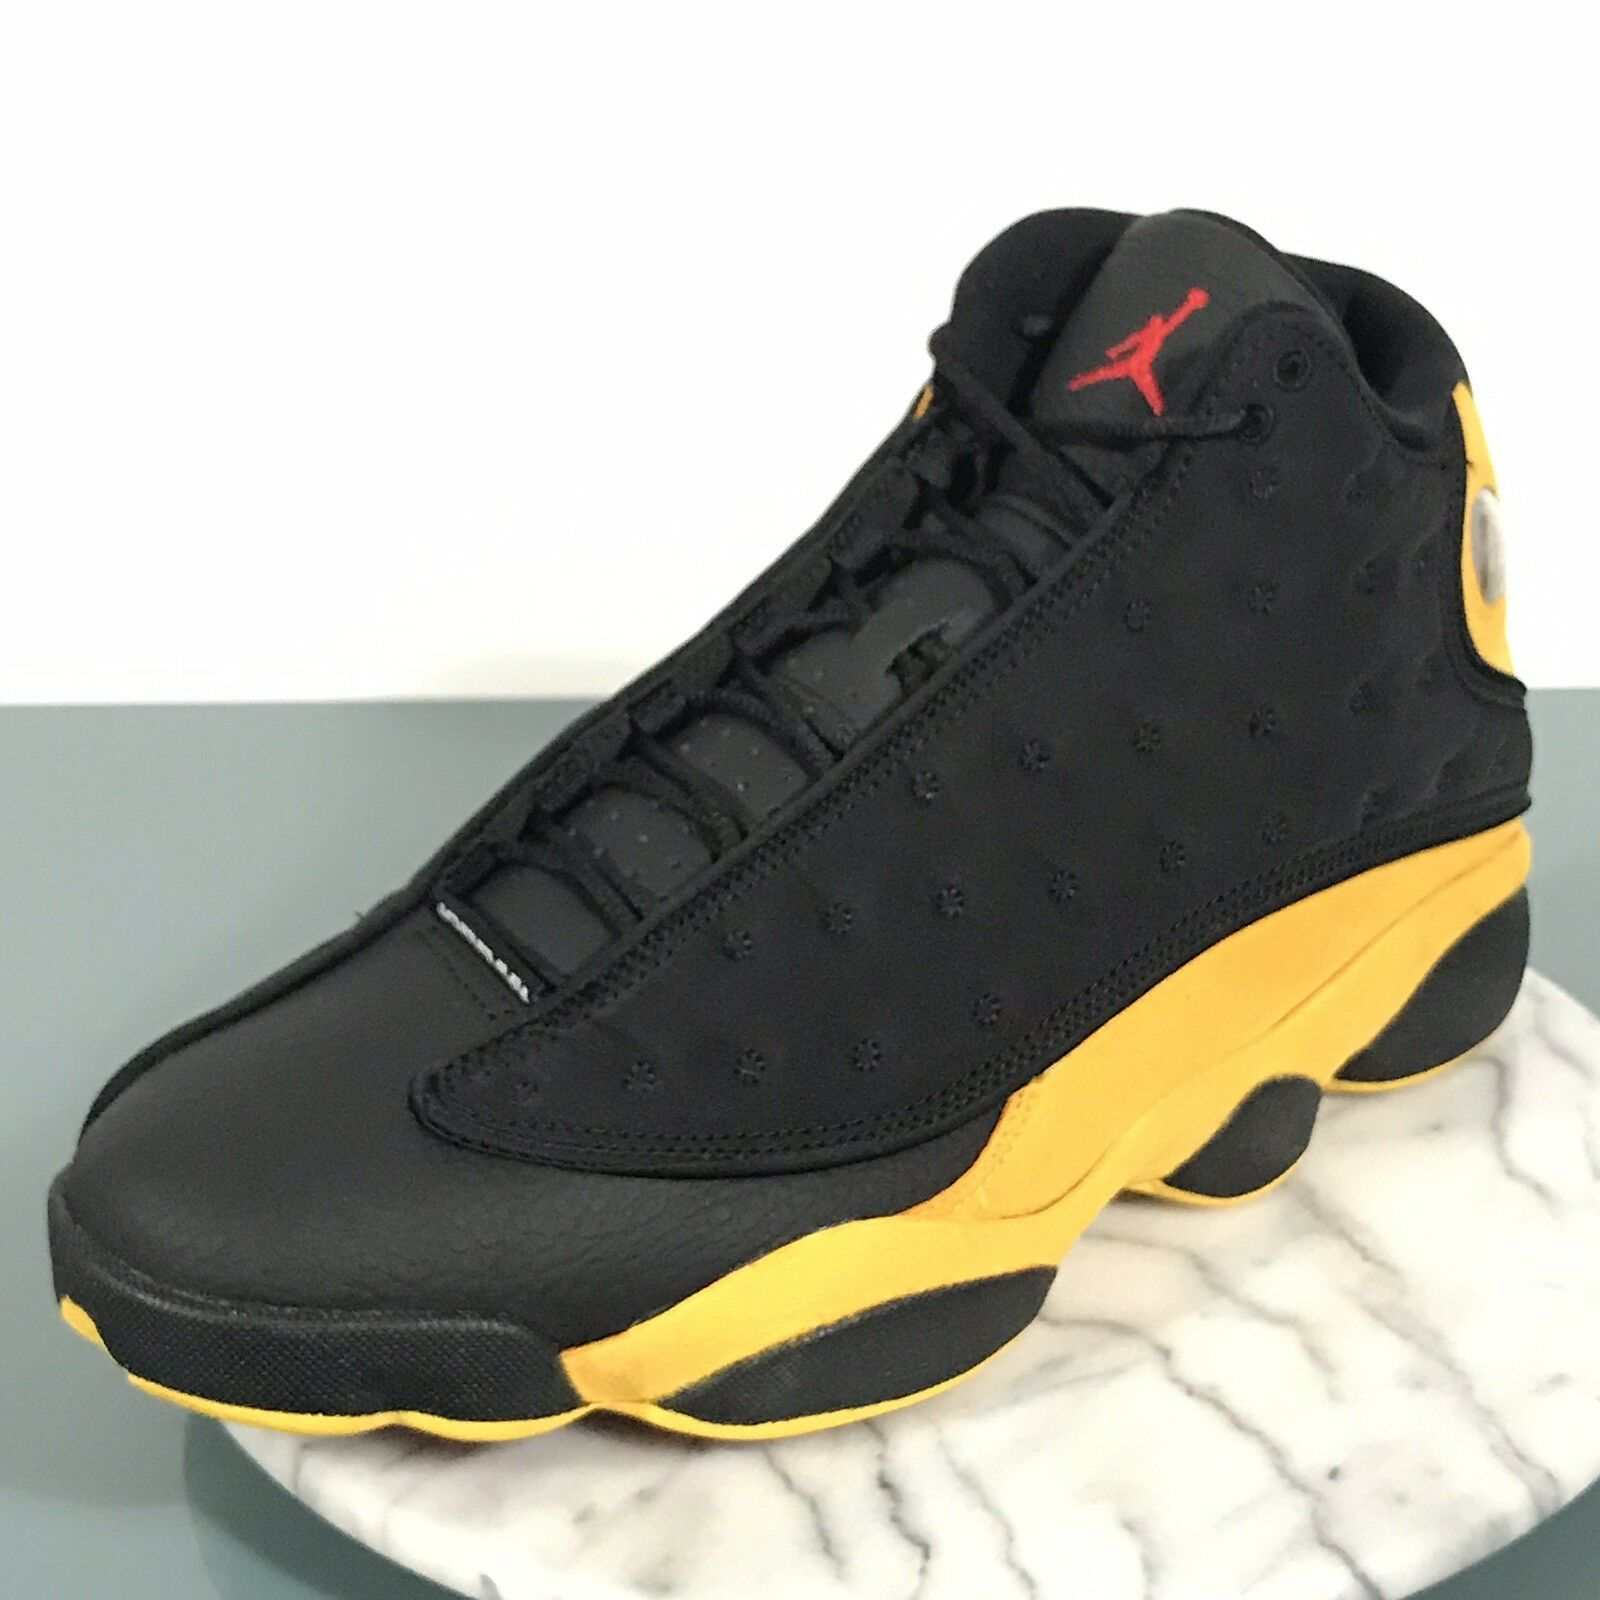 2018 Air Jordan 13 XIII Melo Class of 2002 414571-035 Carmelo Anthony Size 12